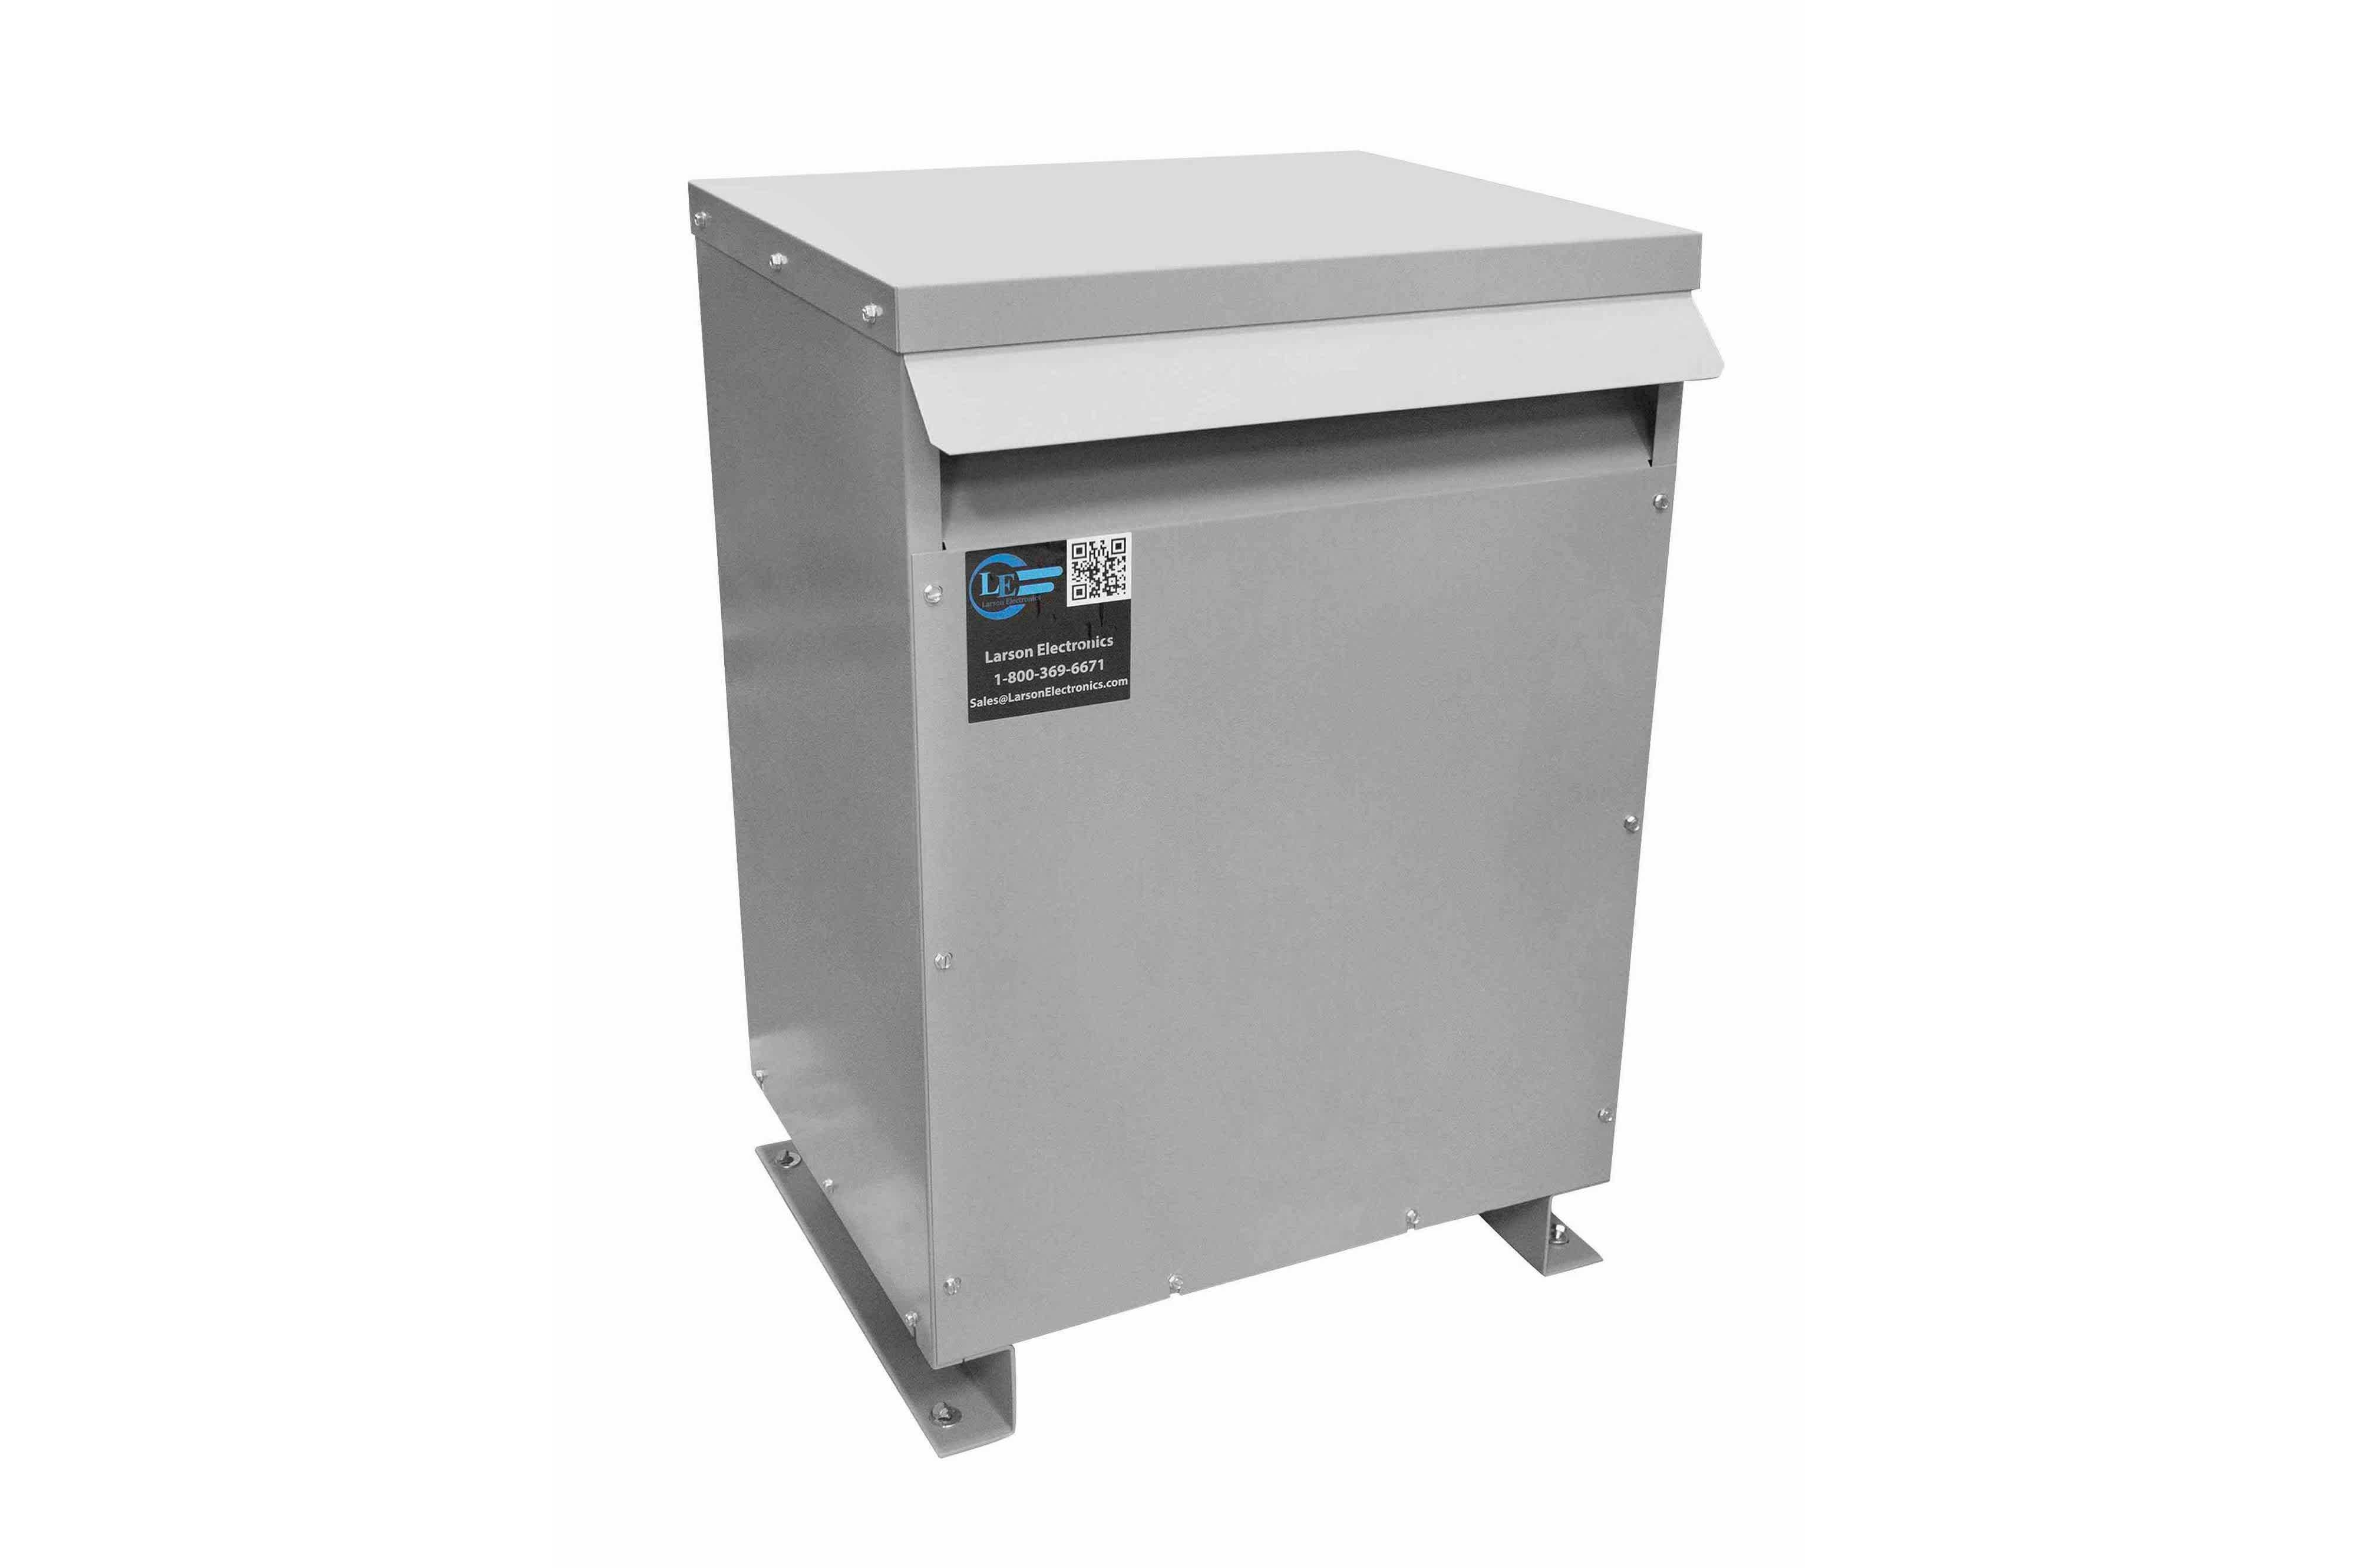 250 kVA 3PH DOE Transformer, 240V Delta Primary, 415Y/240 Wye-N Secondary, N3R, Ventilated, 60 Hz